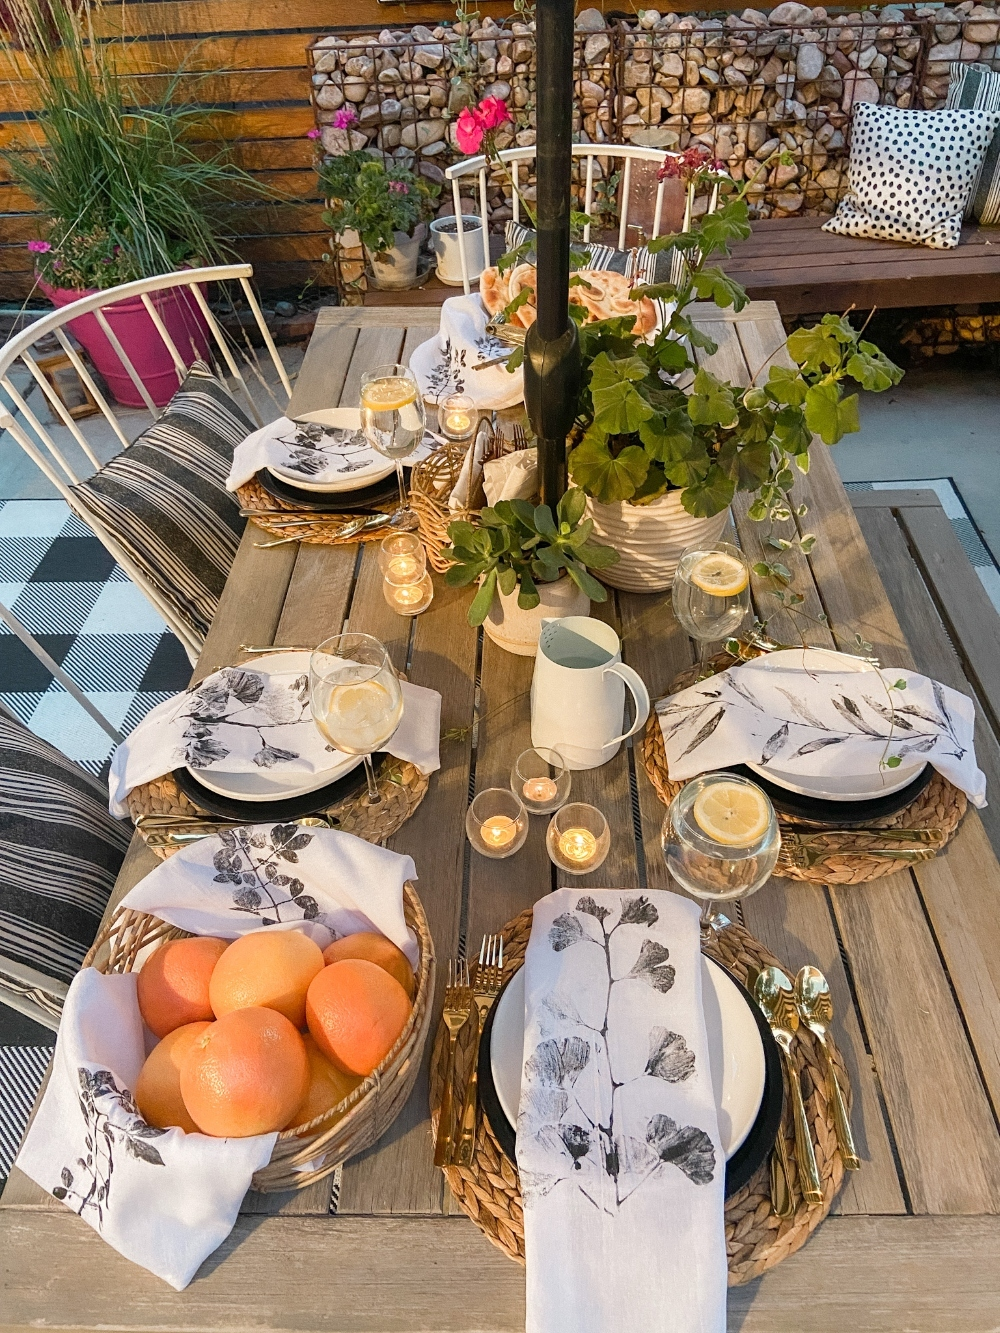 Dollar Store Stamped Leaf Napkins. Dress up your Autumn table by creating DIY stamped napkins with leaves from your neighborhood or a special place!